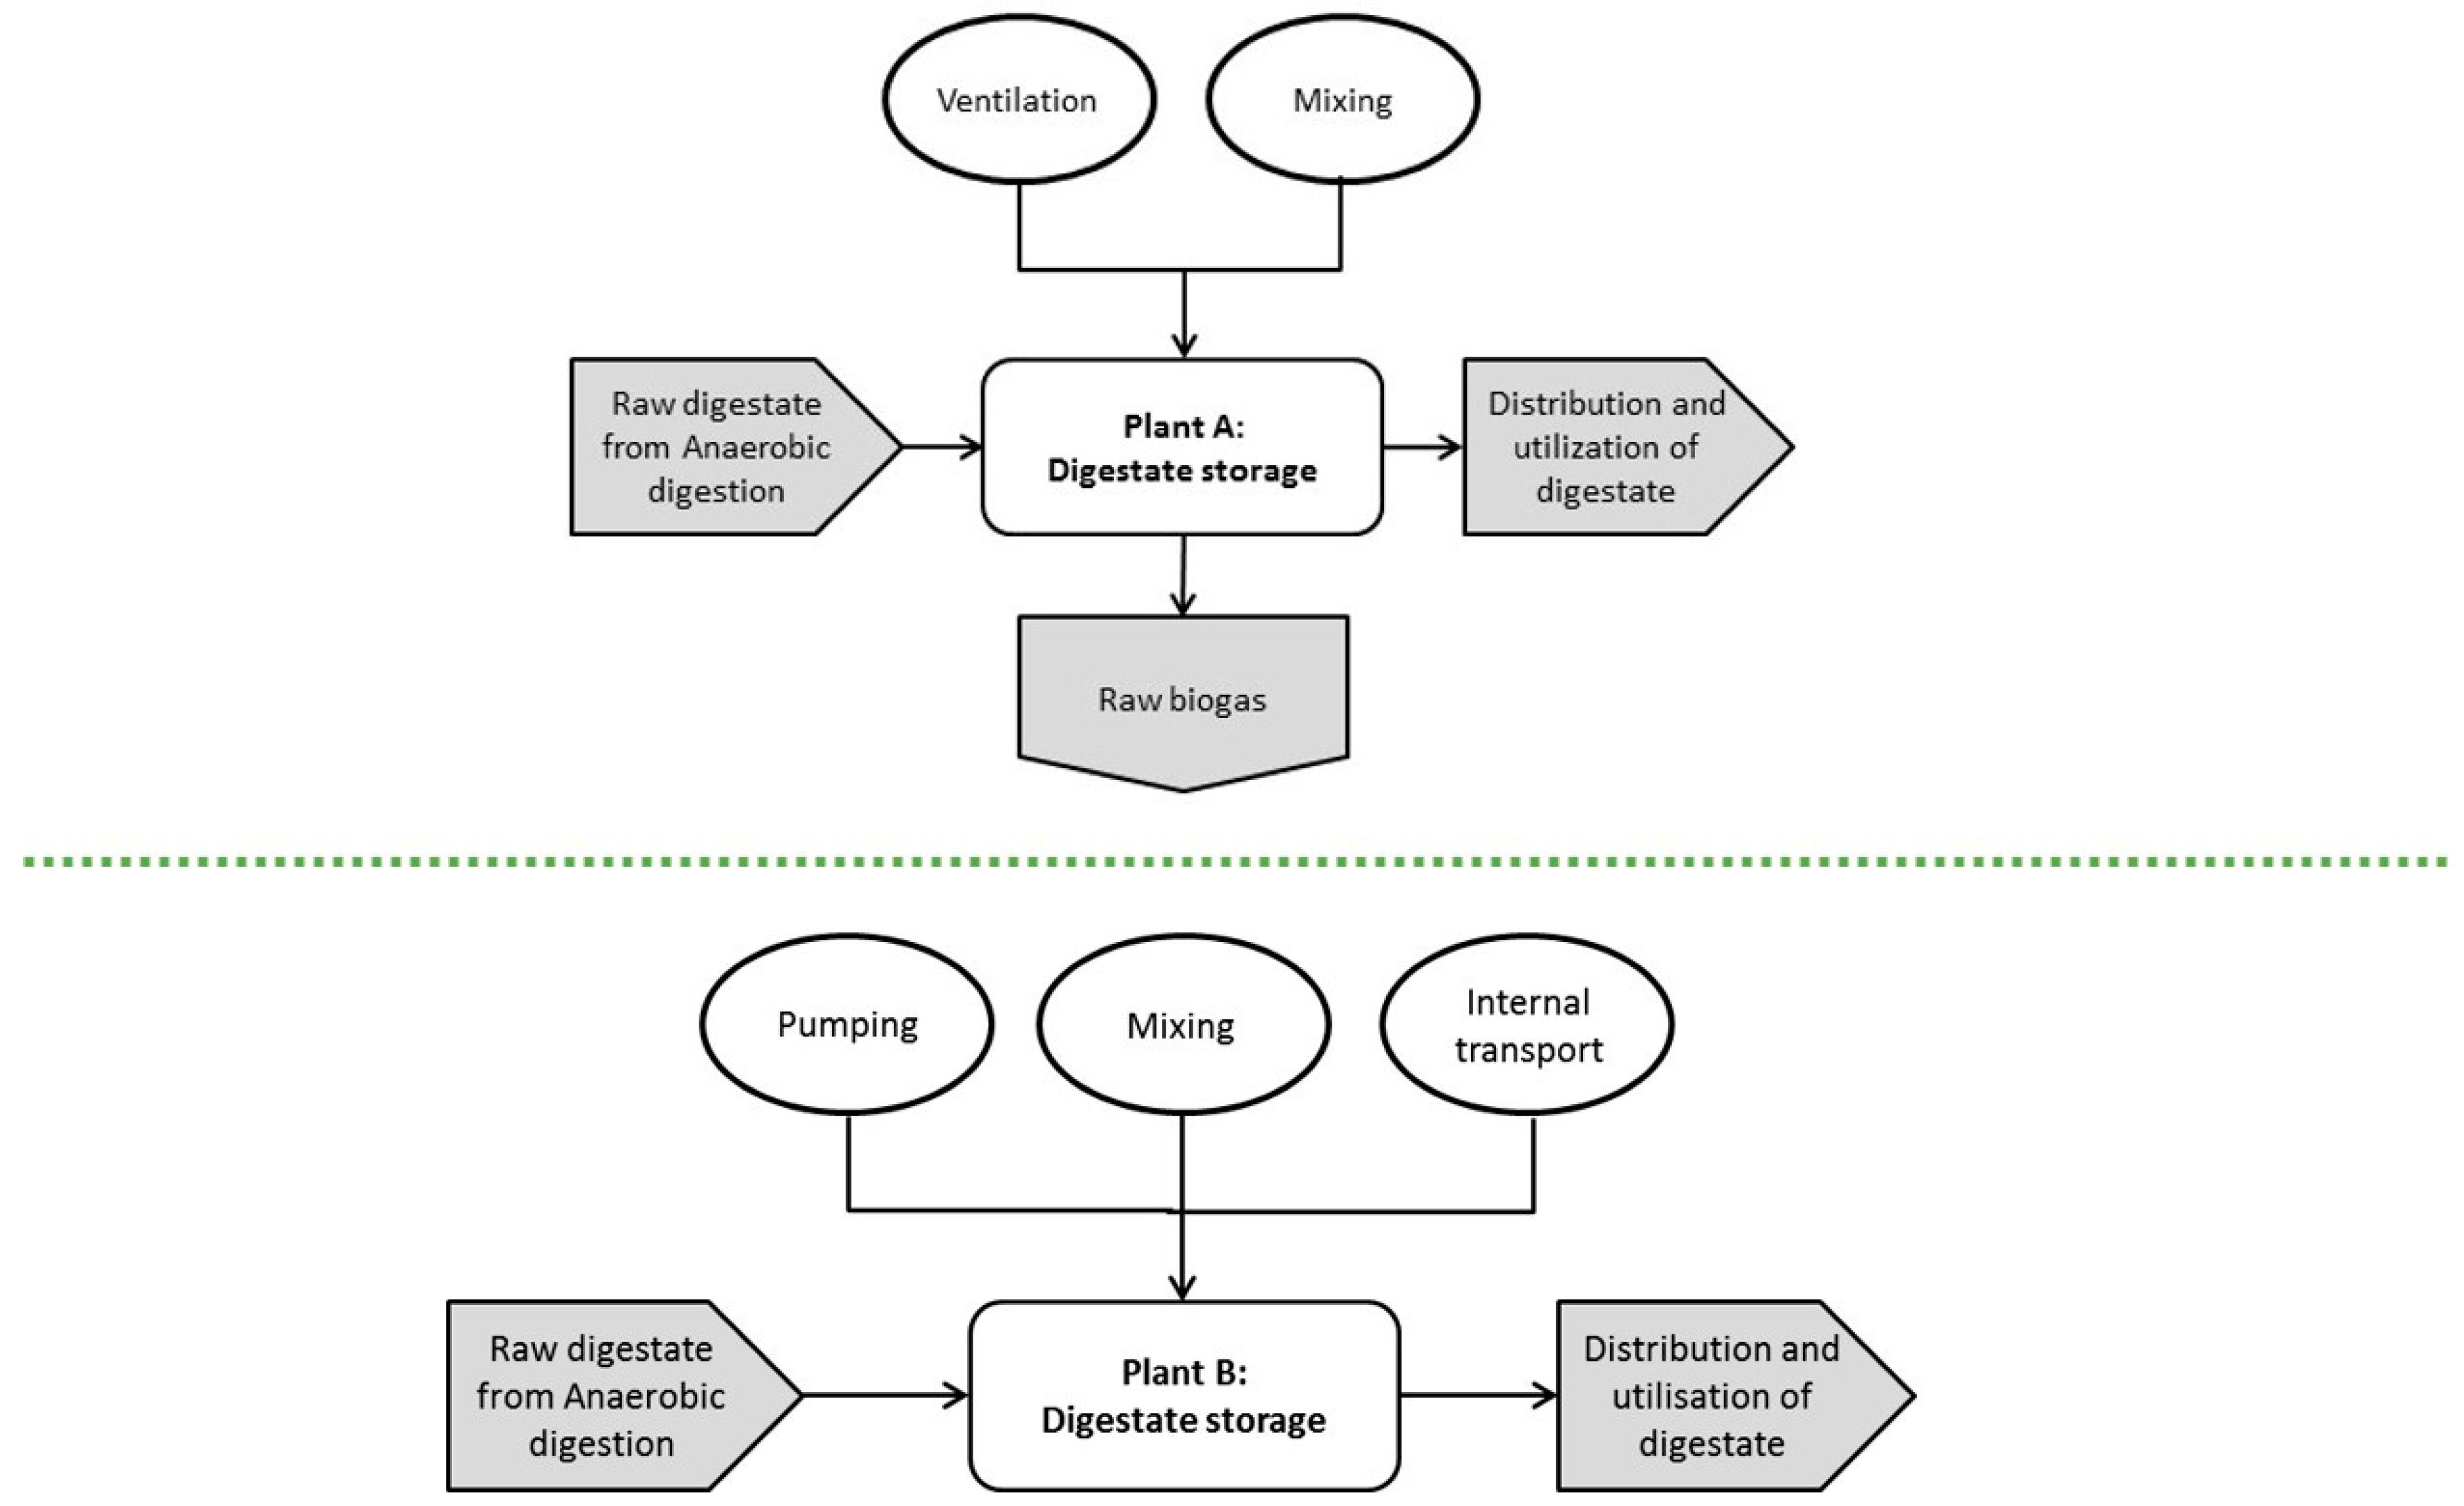 Energies Free Full Text Methodology For Analysing Energy Demand Biogas Plant Diagram No